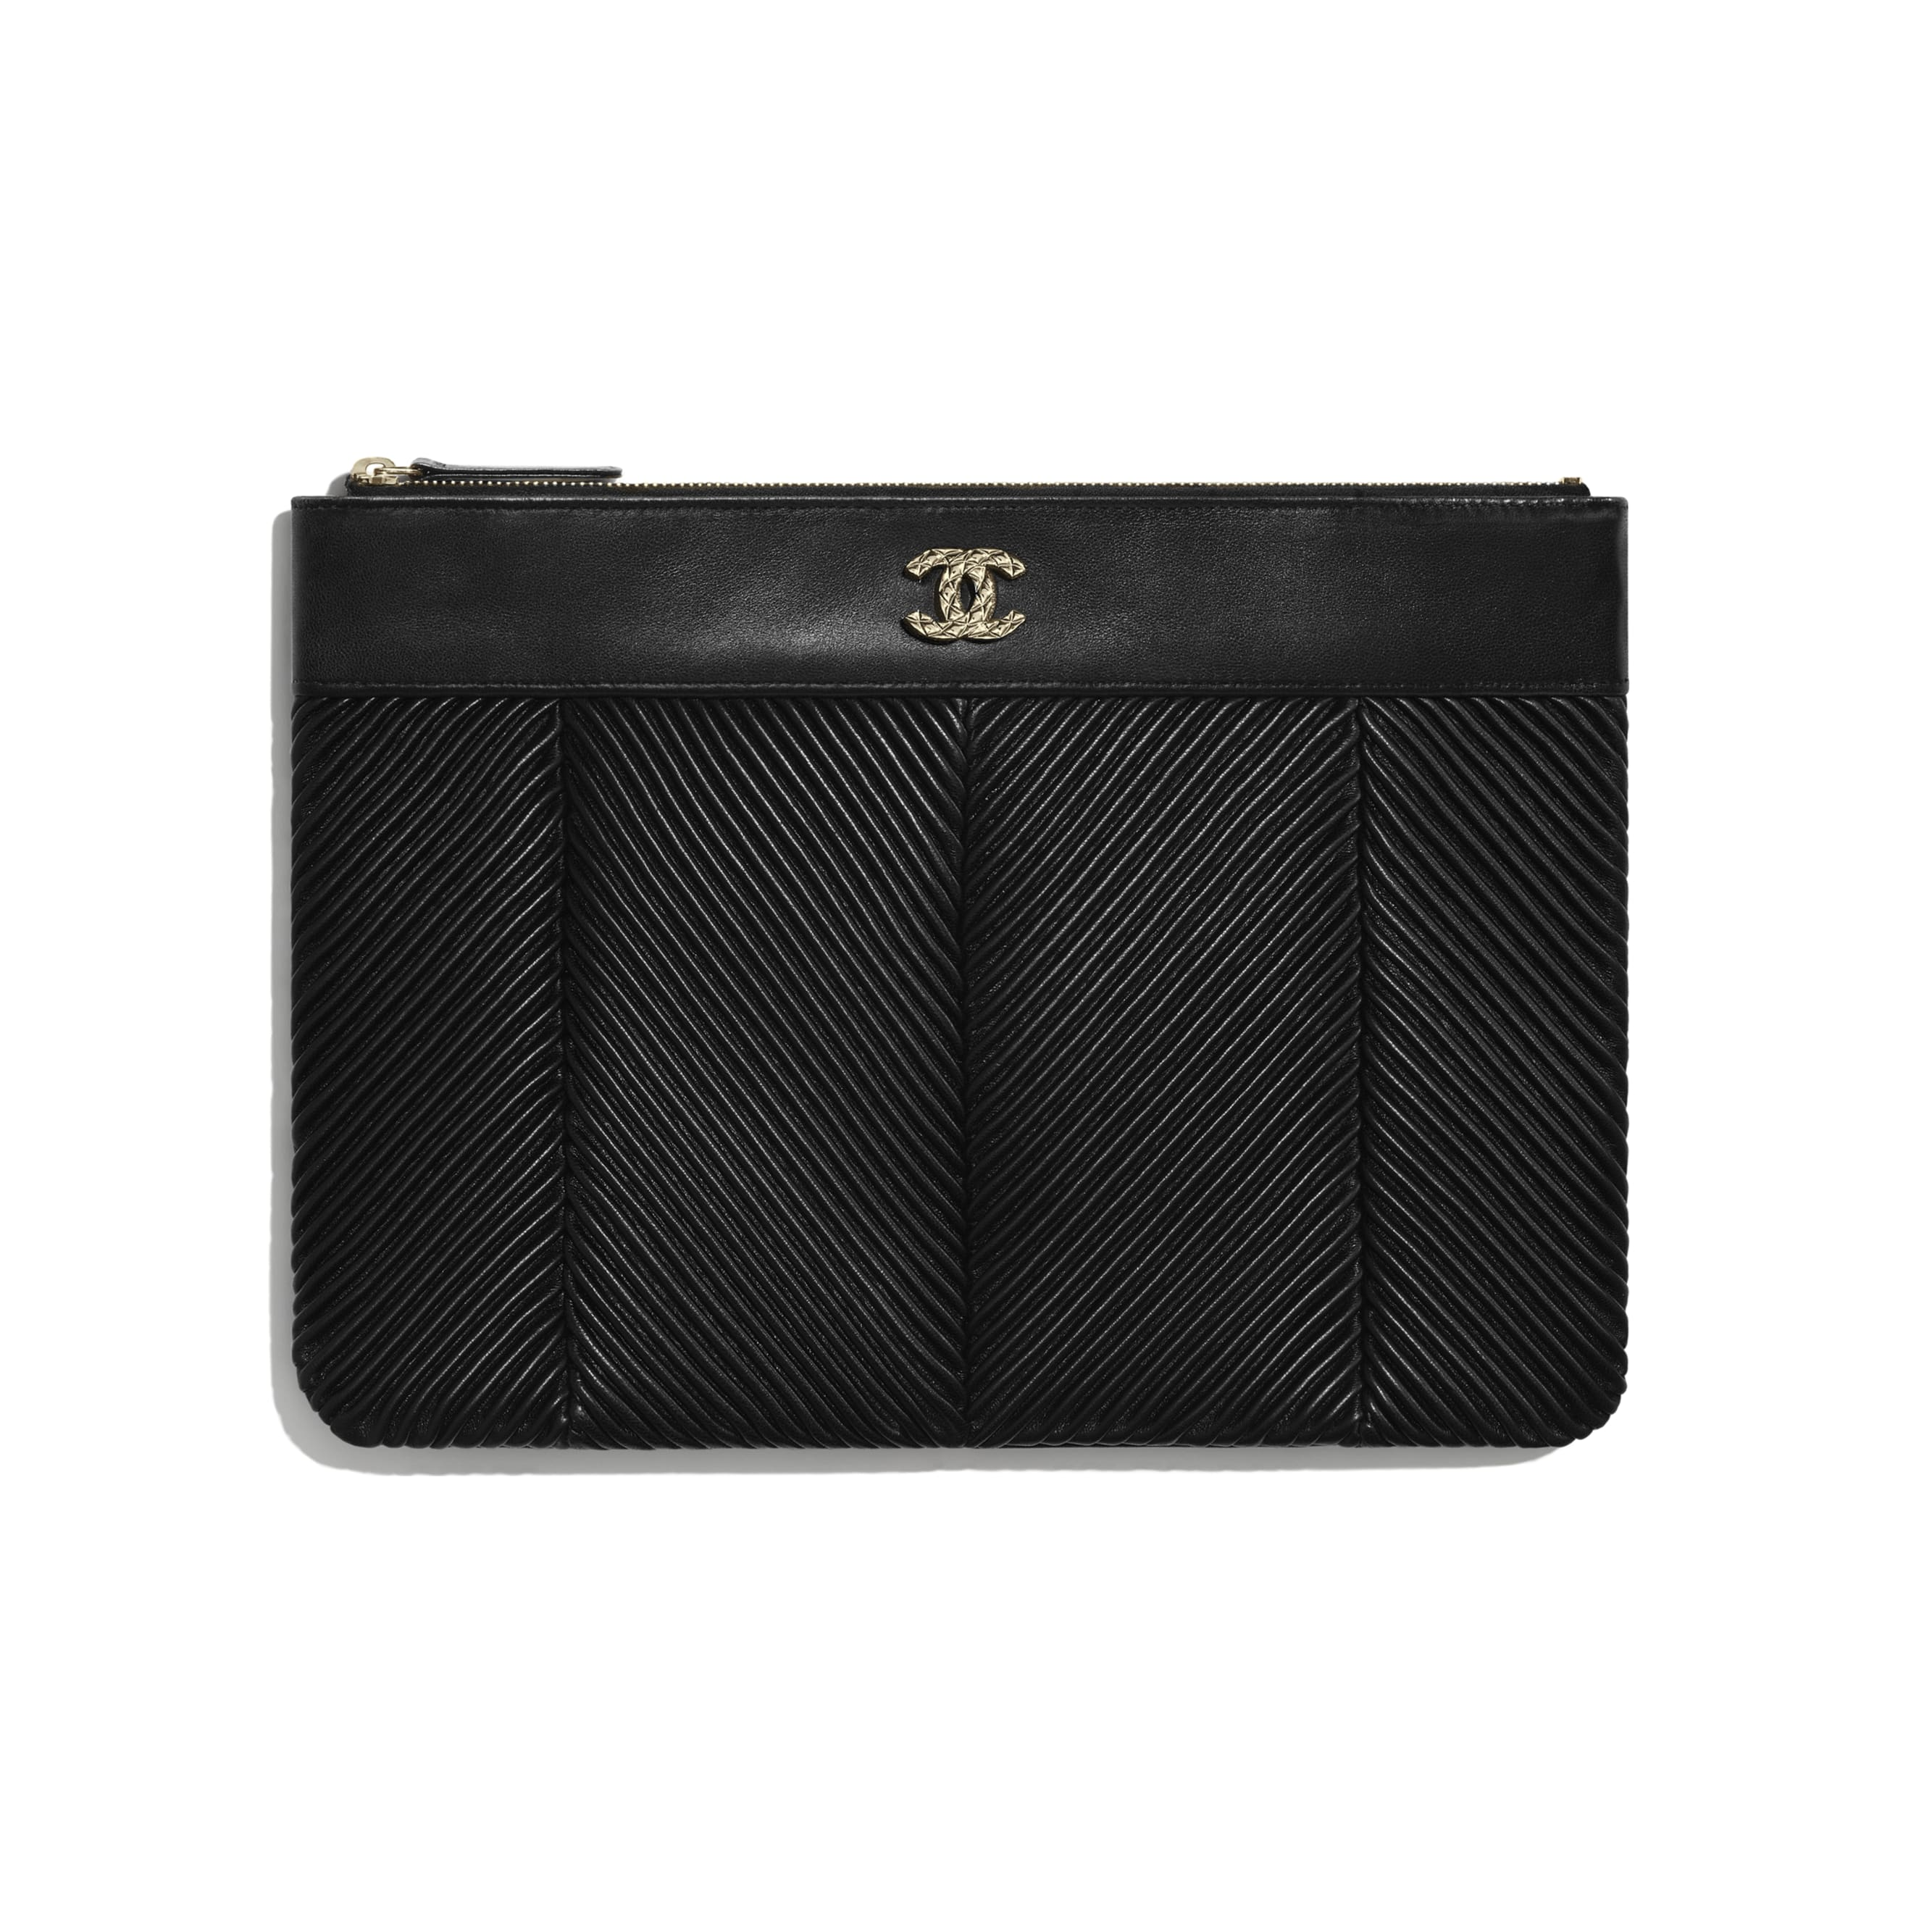 Pouch - Black - Lambskin & Gold-Tone Metal - Default view - see standard sized version